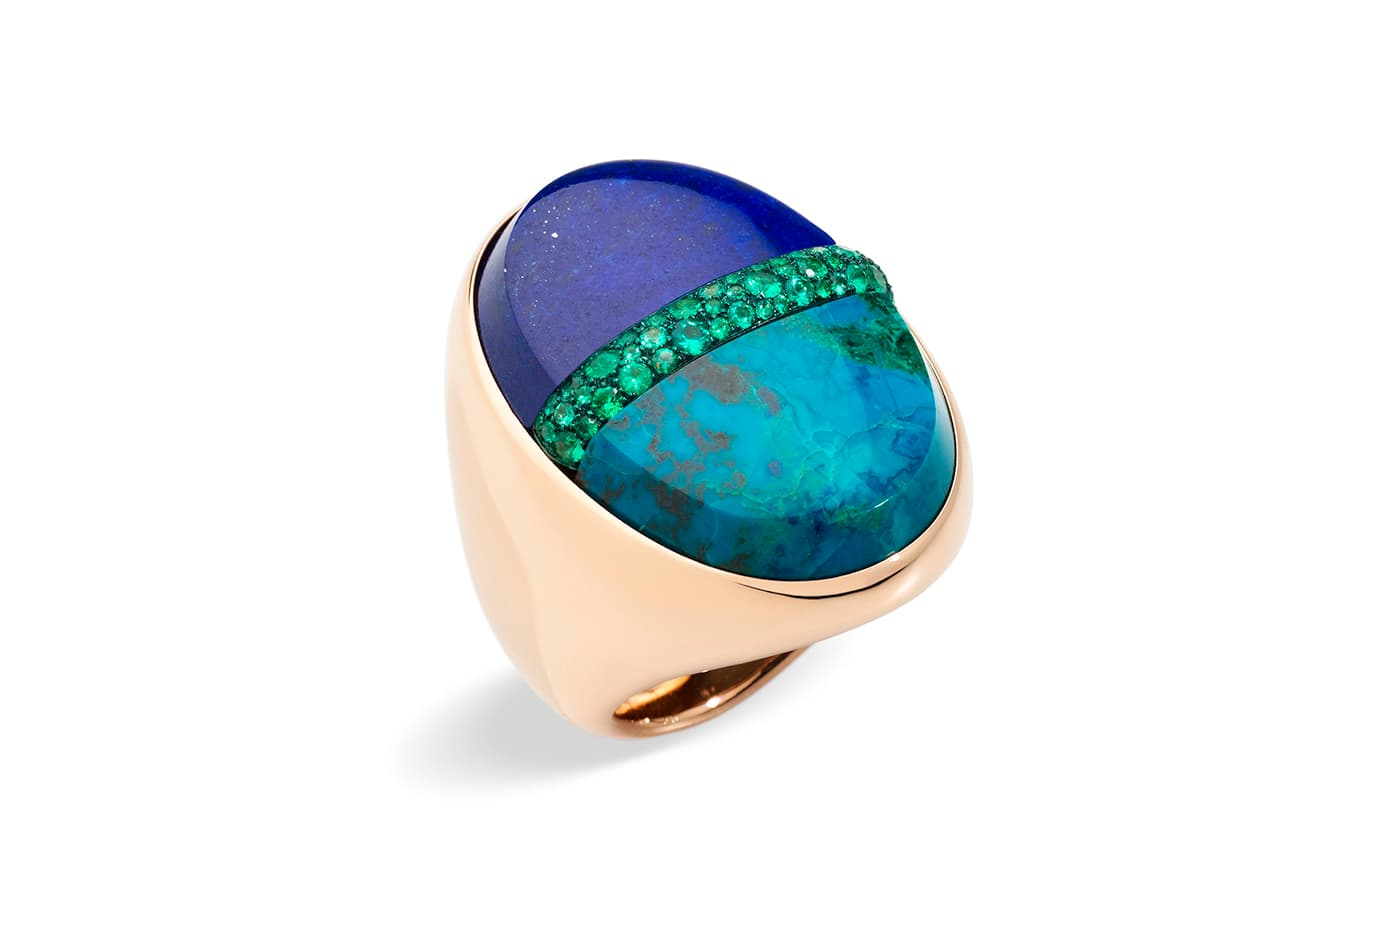 Pomellato 'Armonie Minerale' collection cocktail ring with lapis lazuli, turquoise and tsavorites in yellow gold